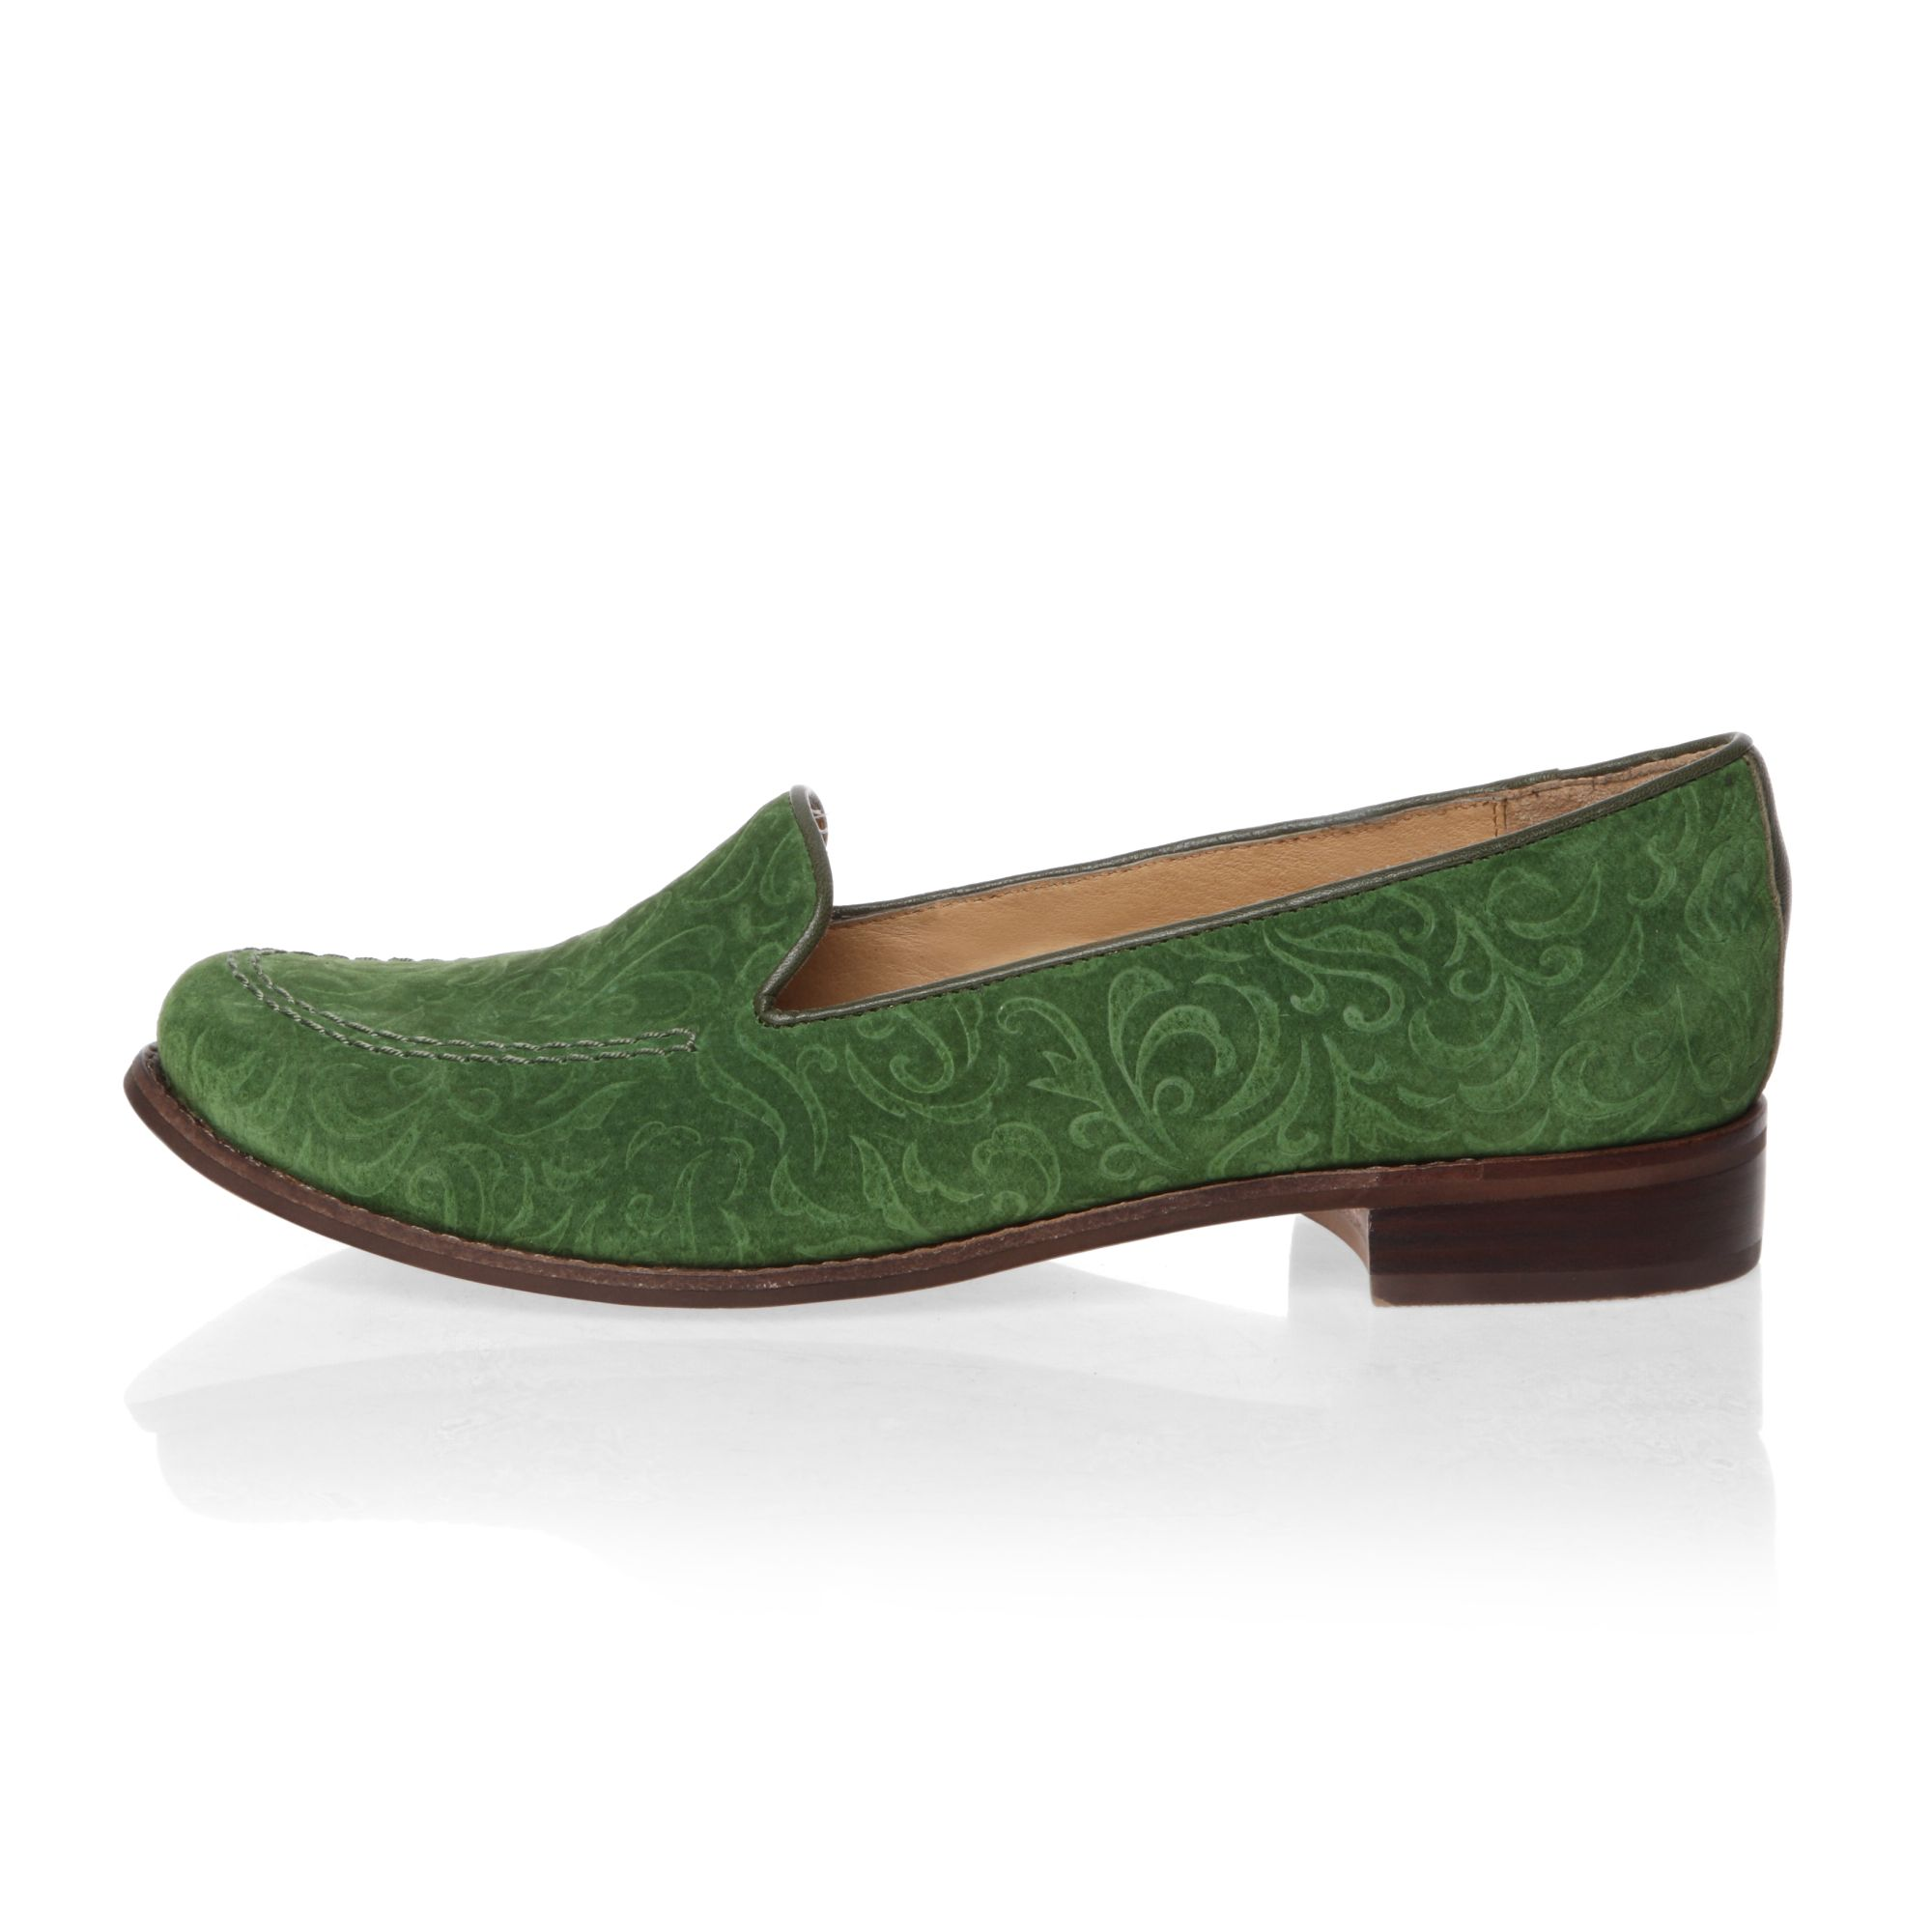 Embossed print suede loafer shoes